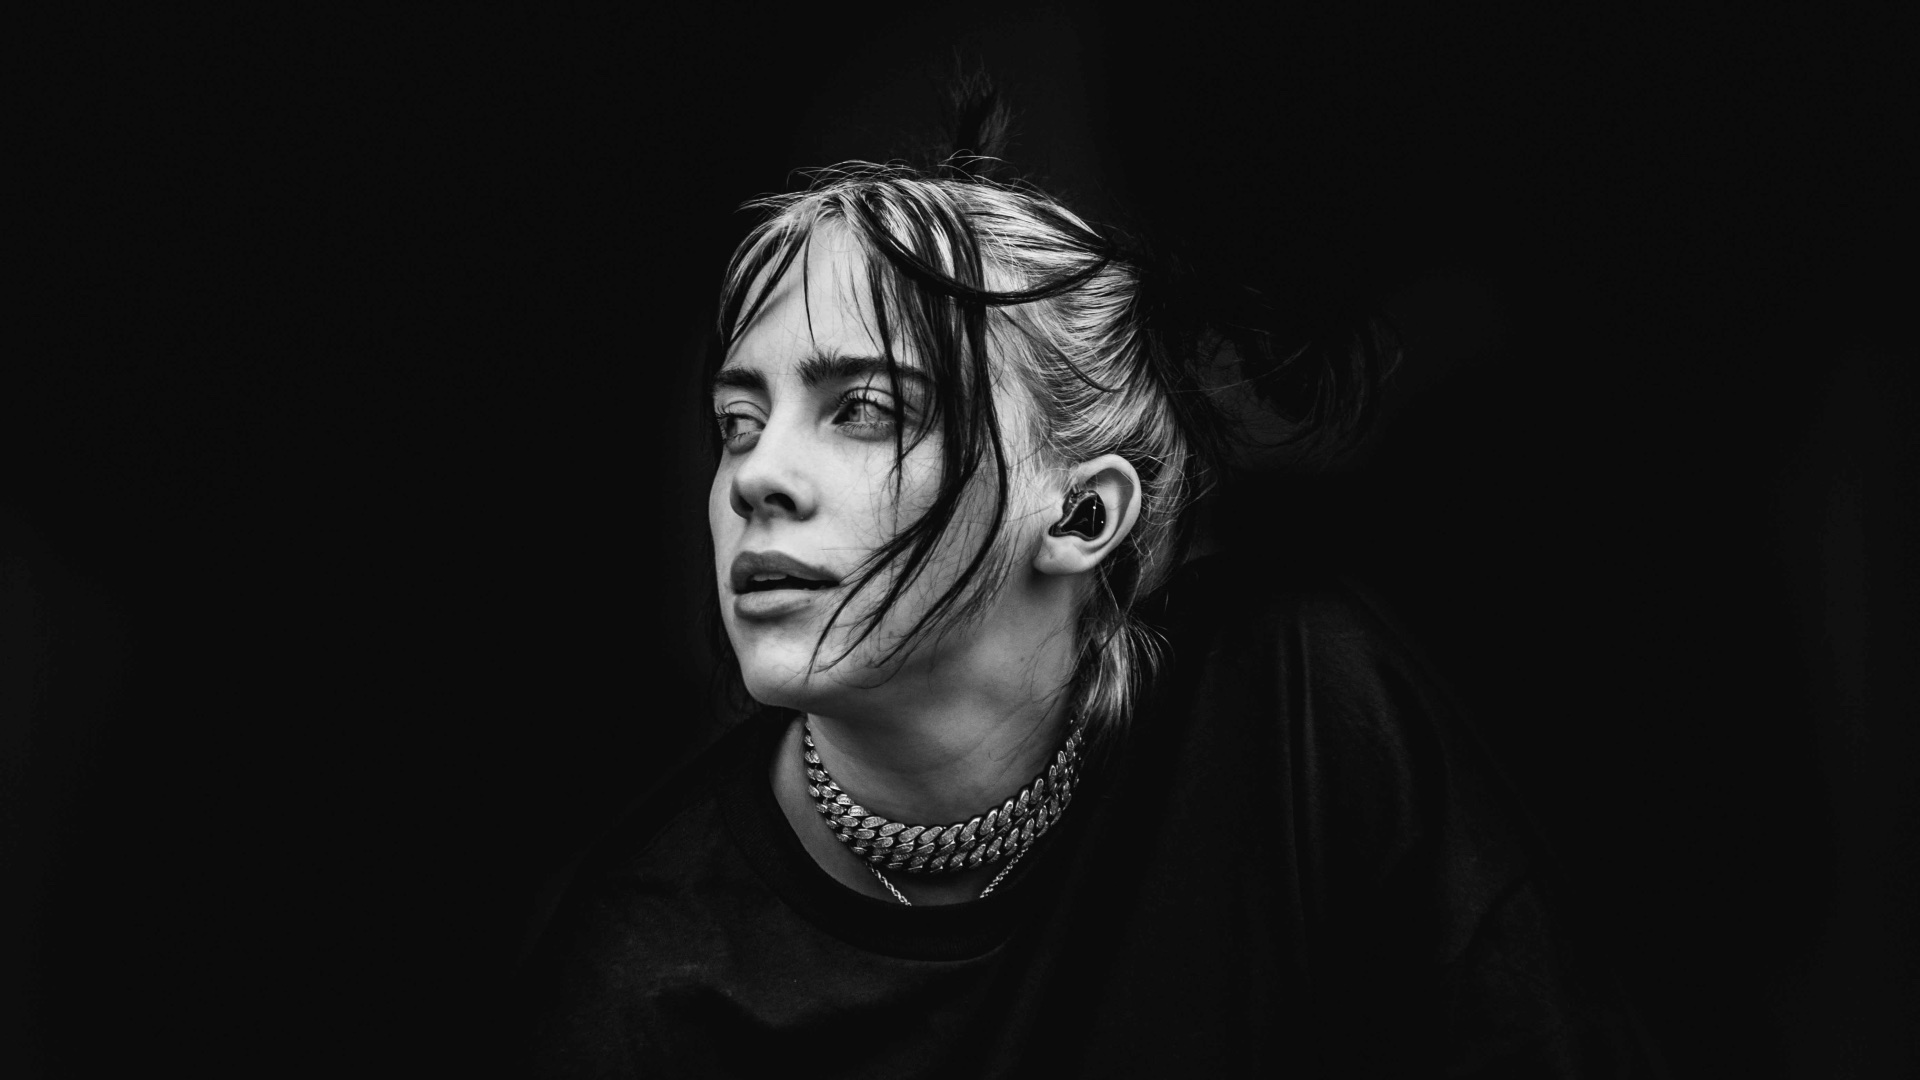 Billie Eilish anuncia fecha de lanzamiento de su segundo álbum, Happier Than Ever